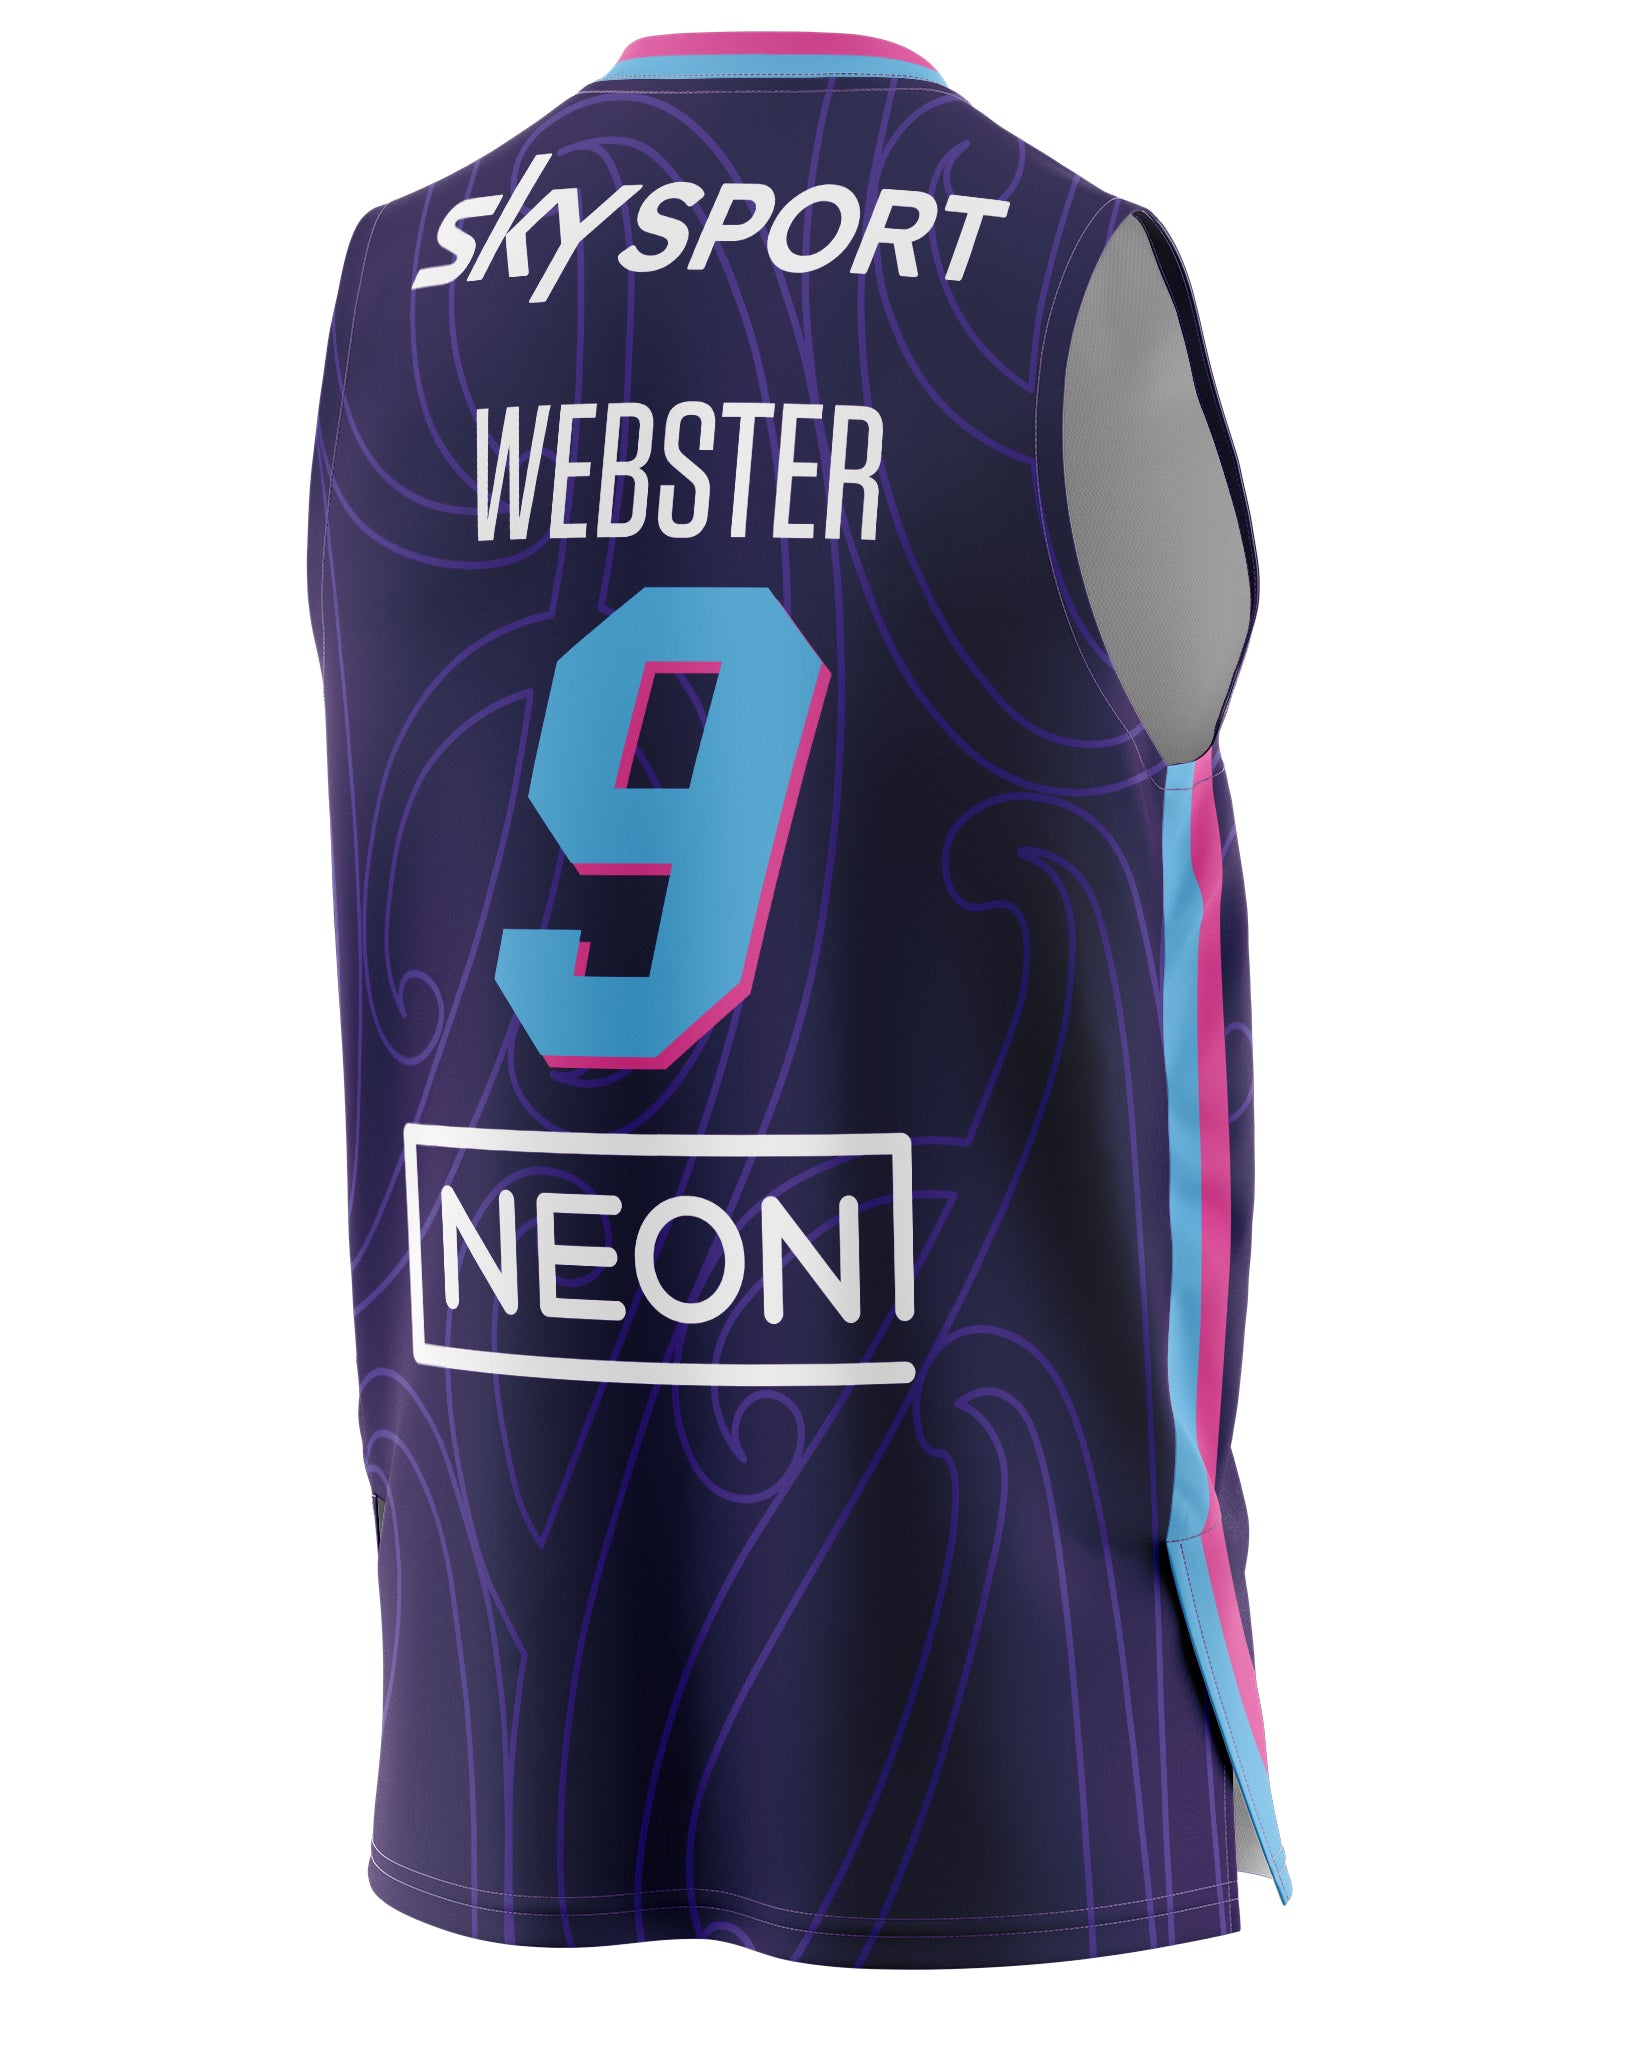 New Zealand Breakers 20/21 Authentic Home Jersey - Corey Webster